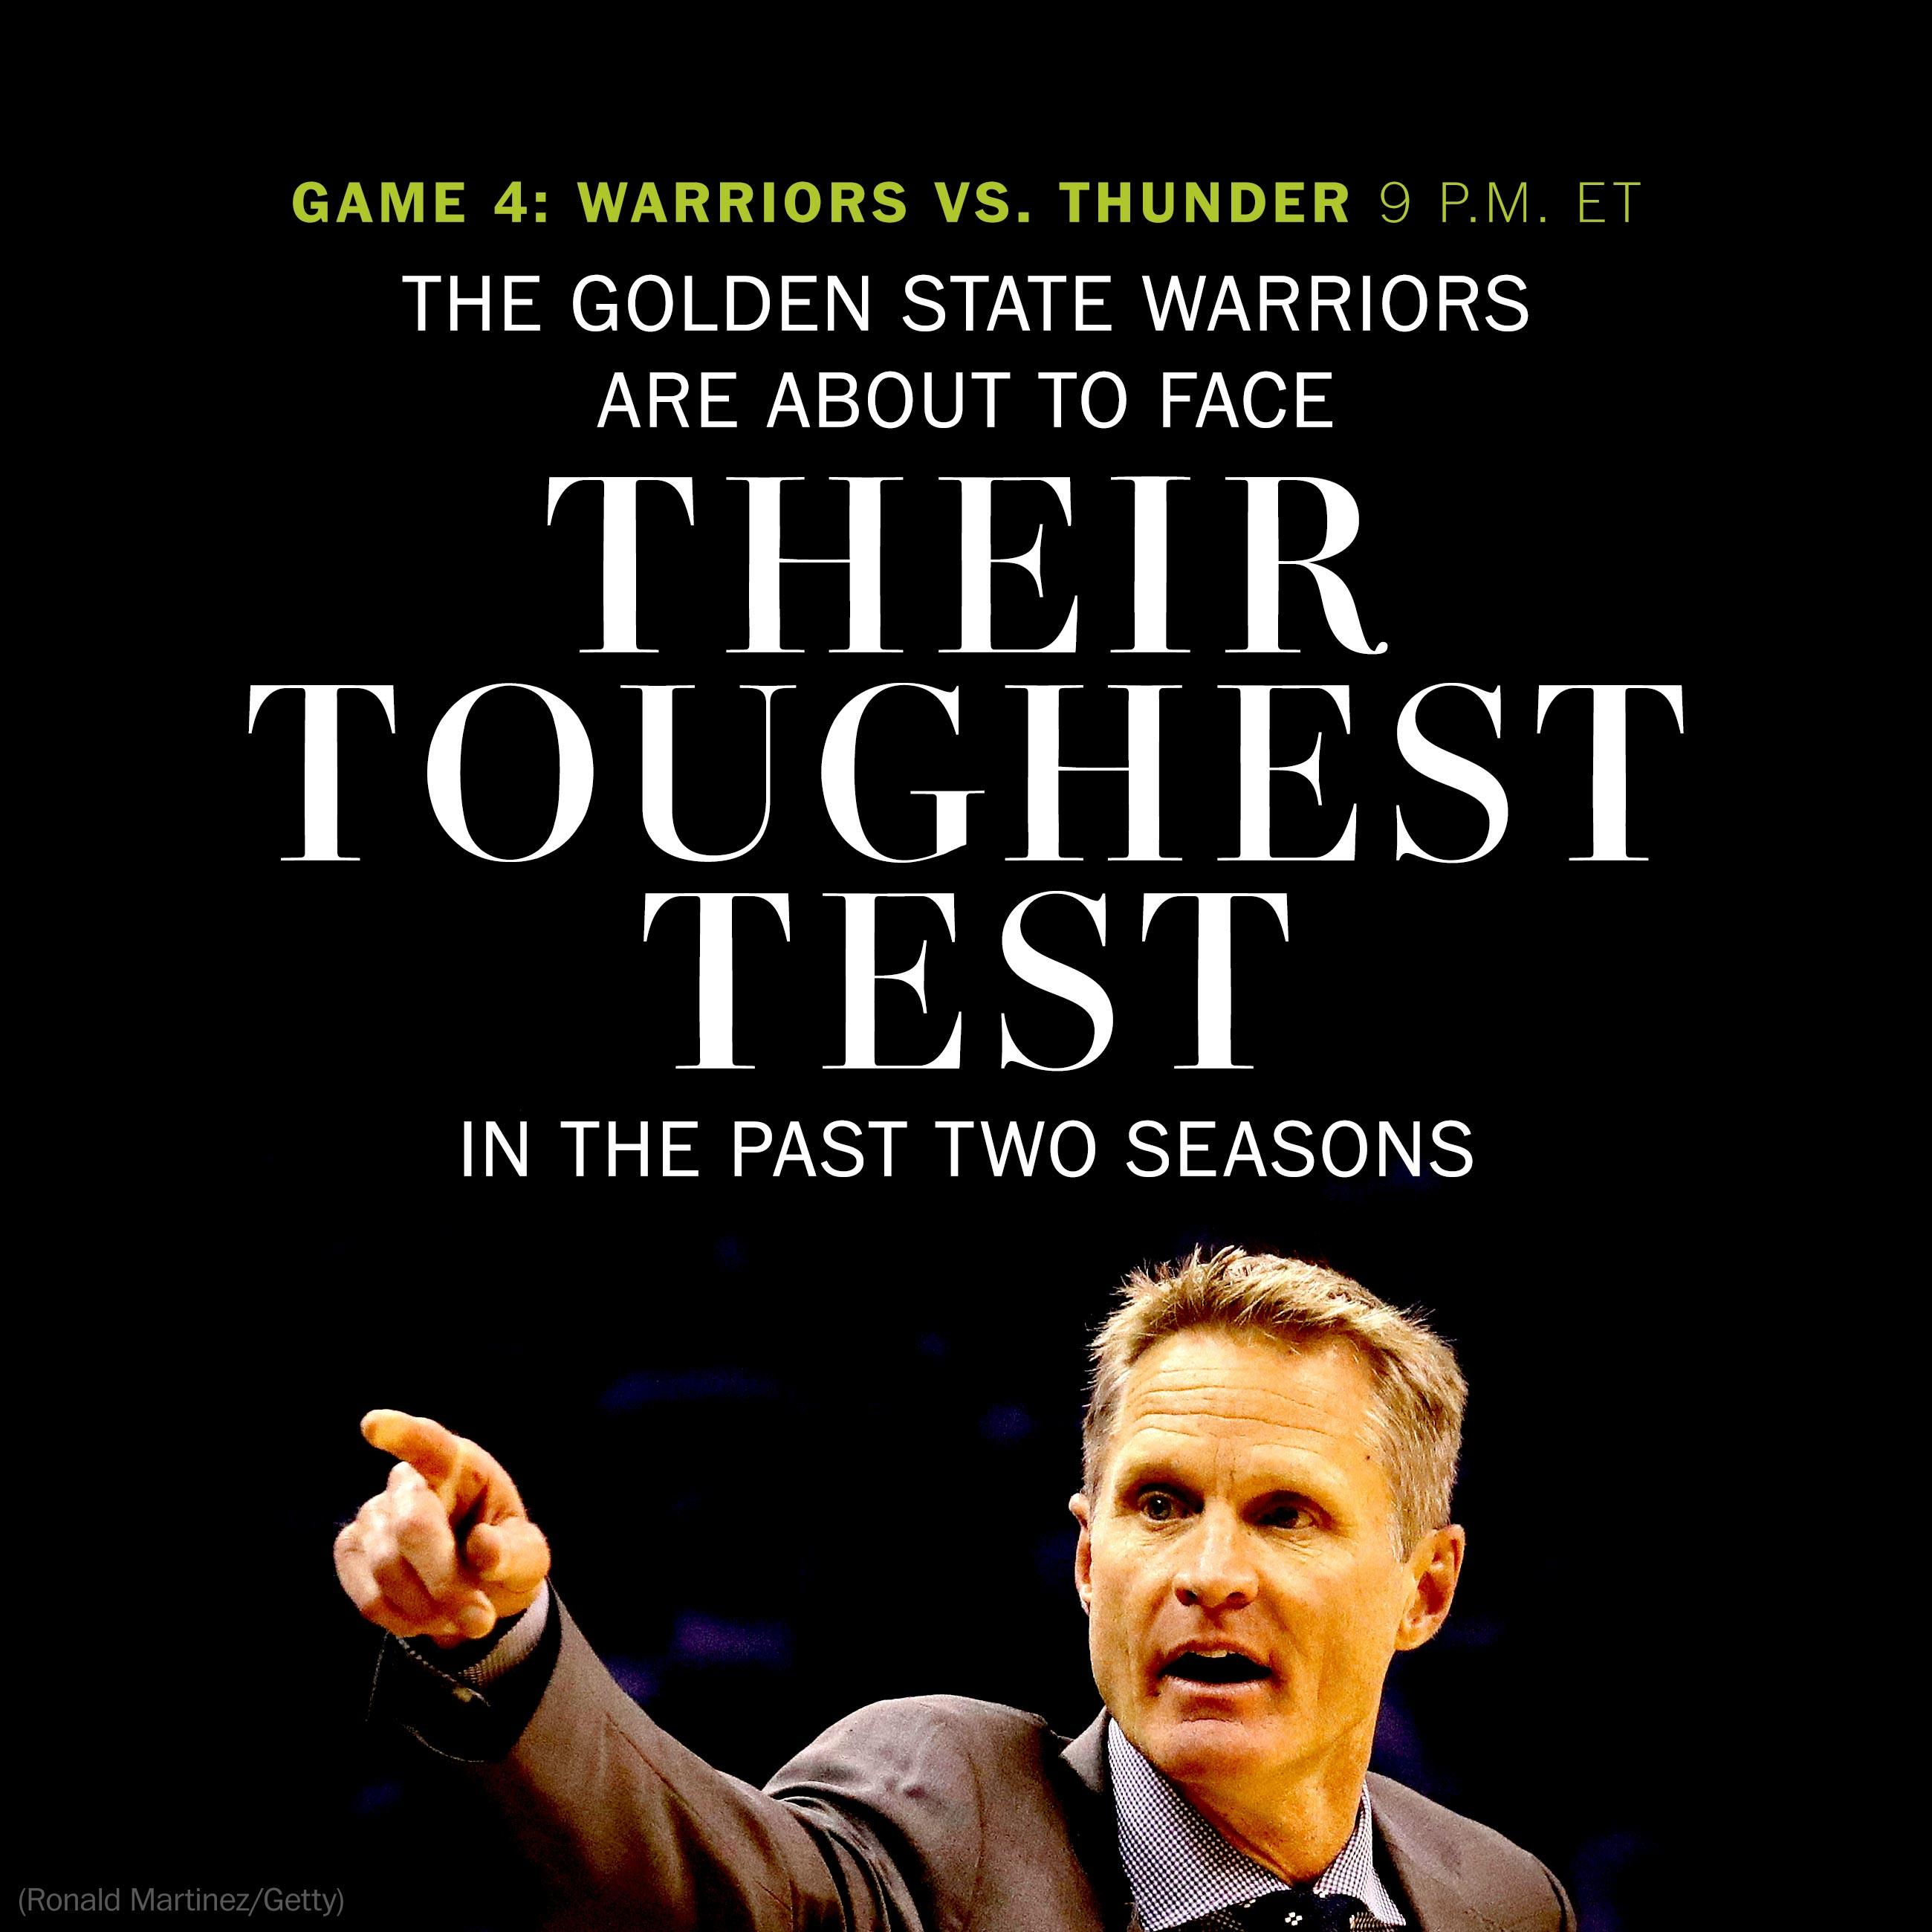 The Golden State Warriors are about to face their toughest test in the past two seasons